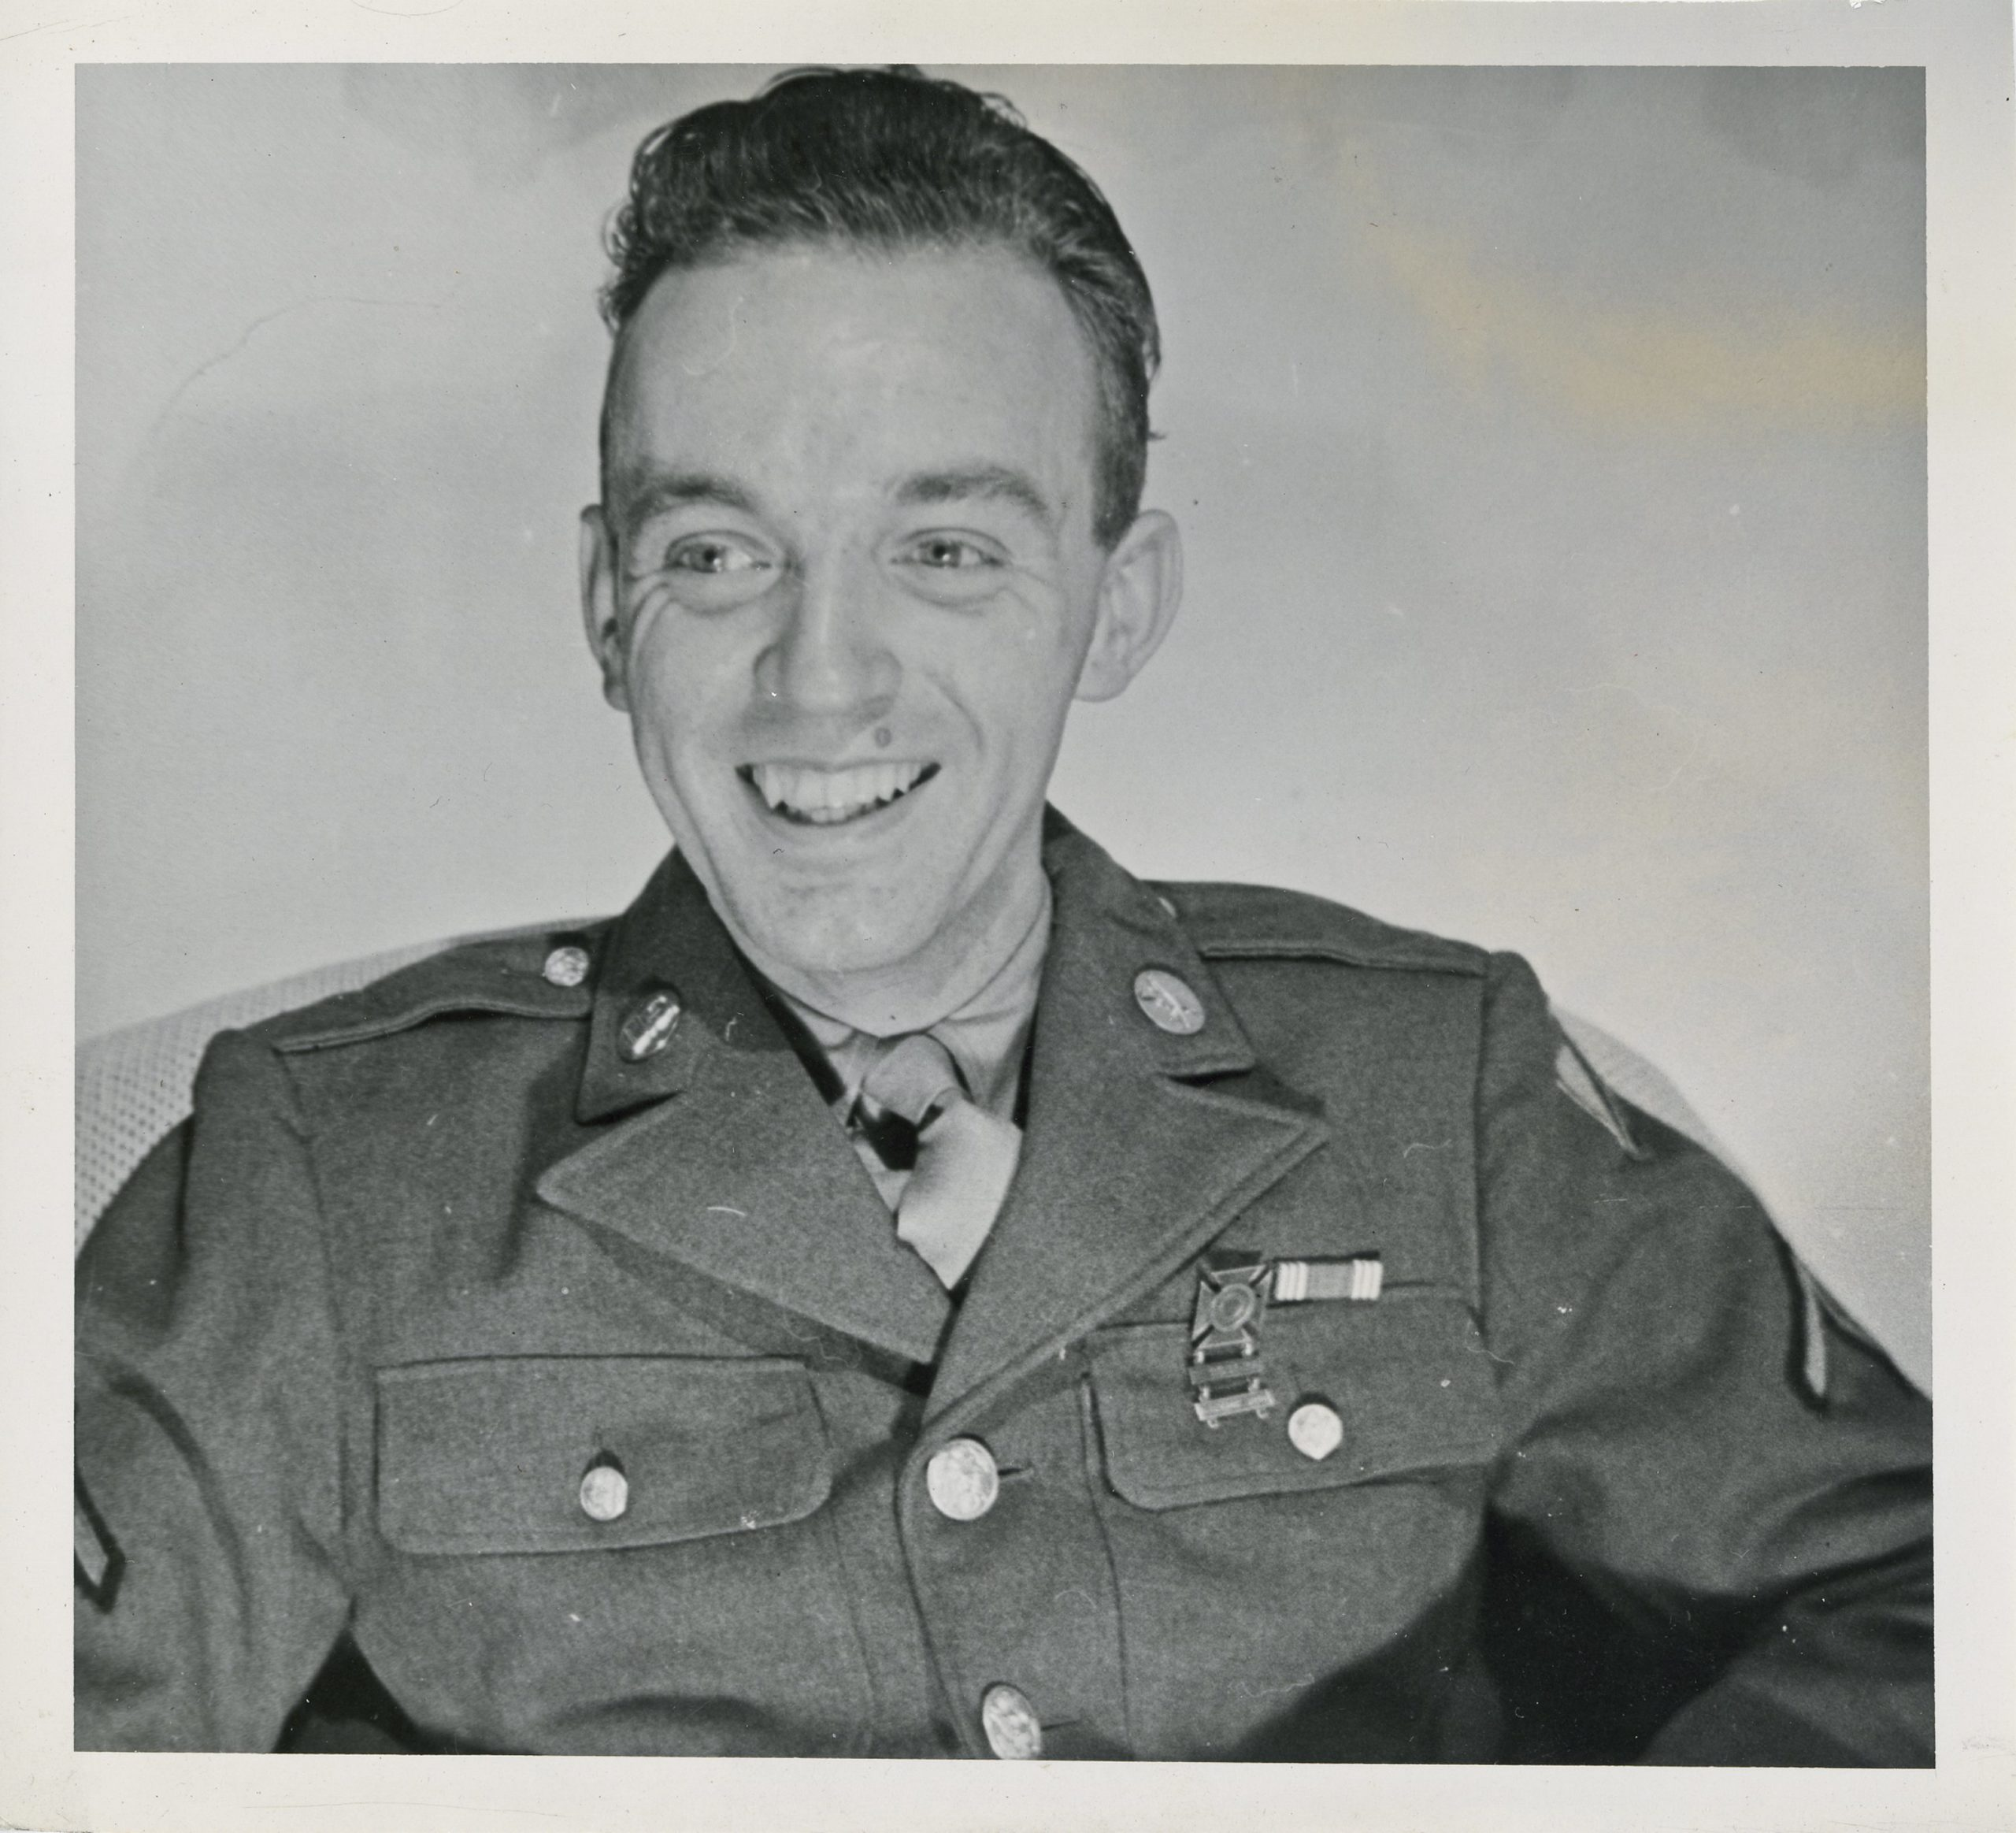 A young American soldier smiles.